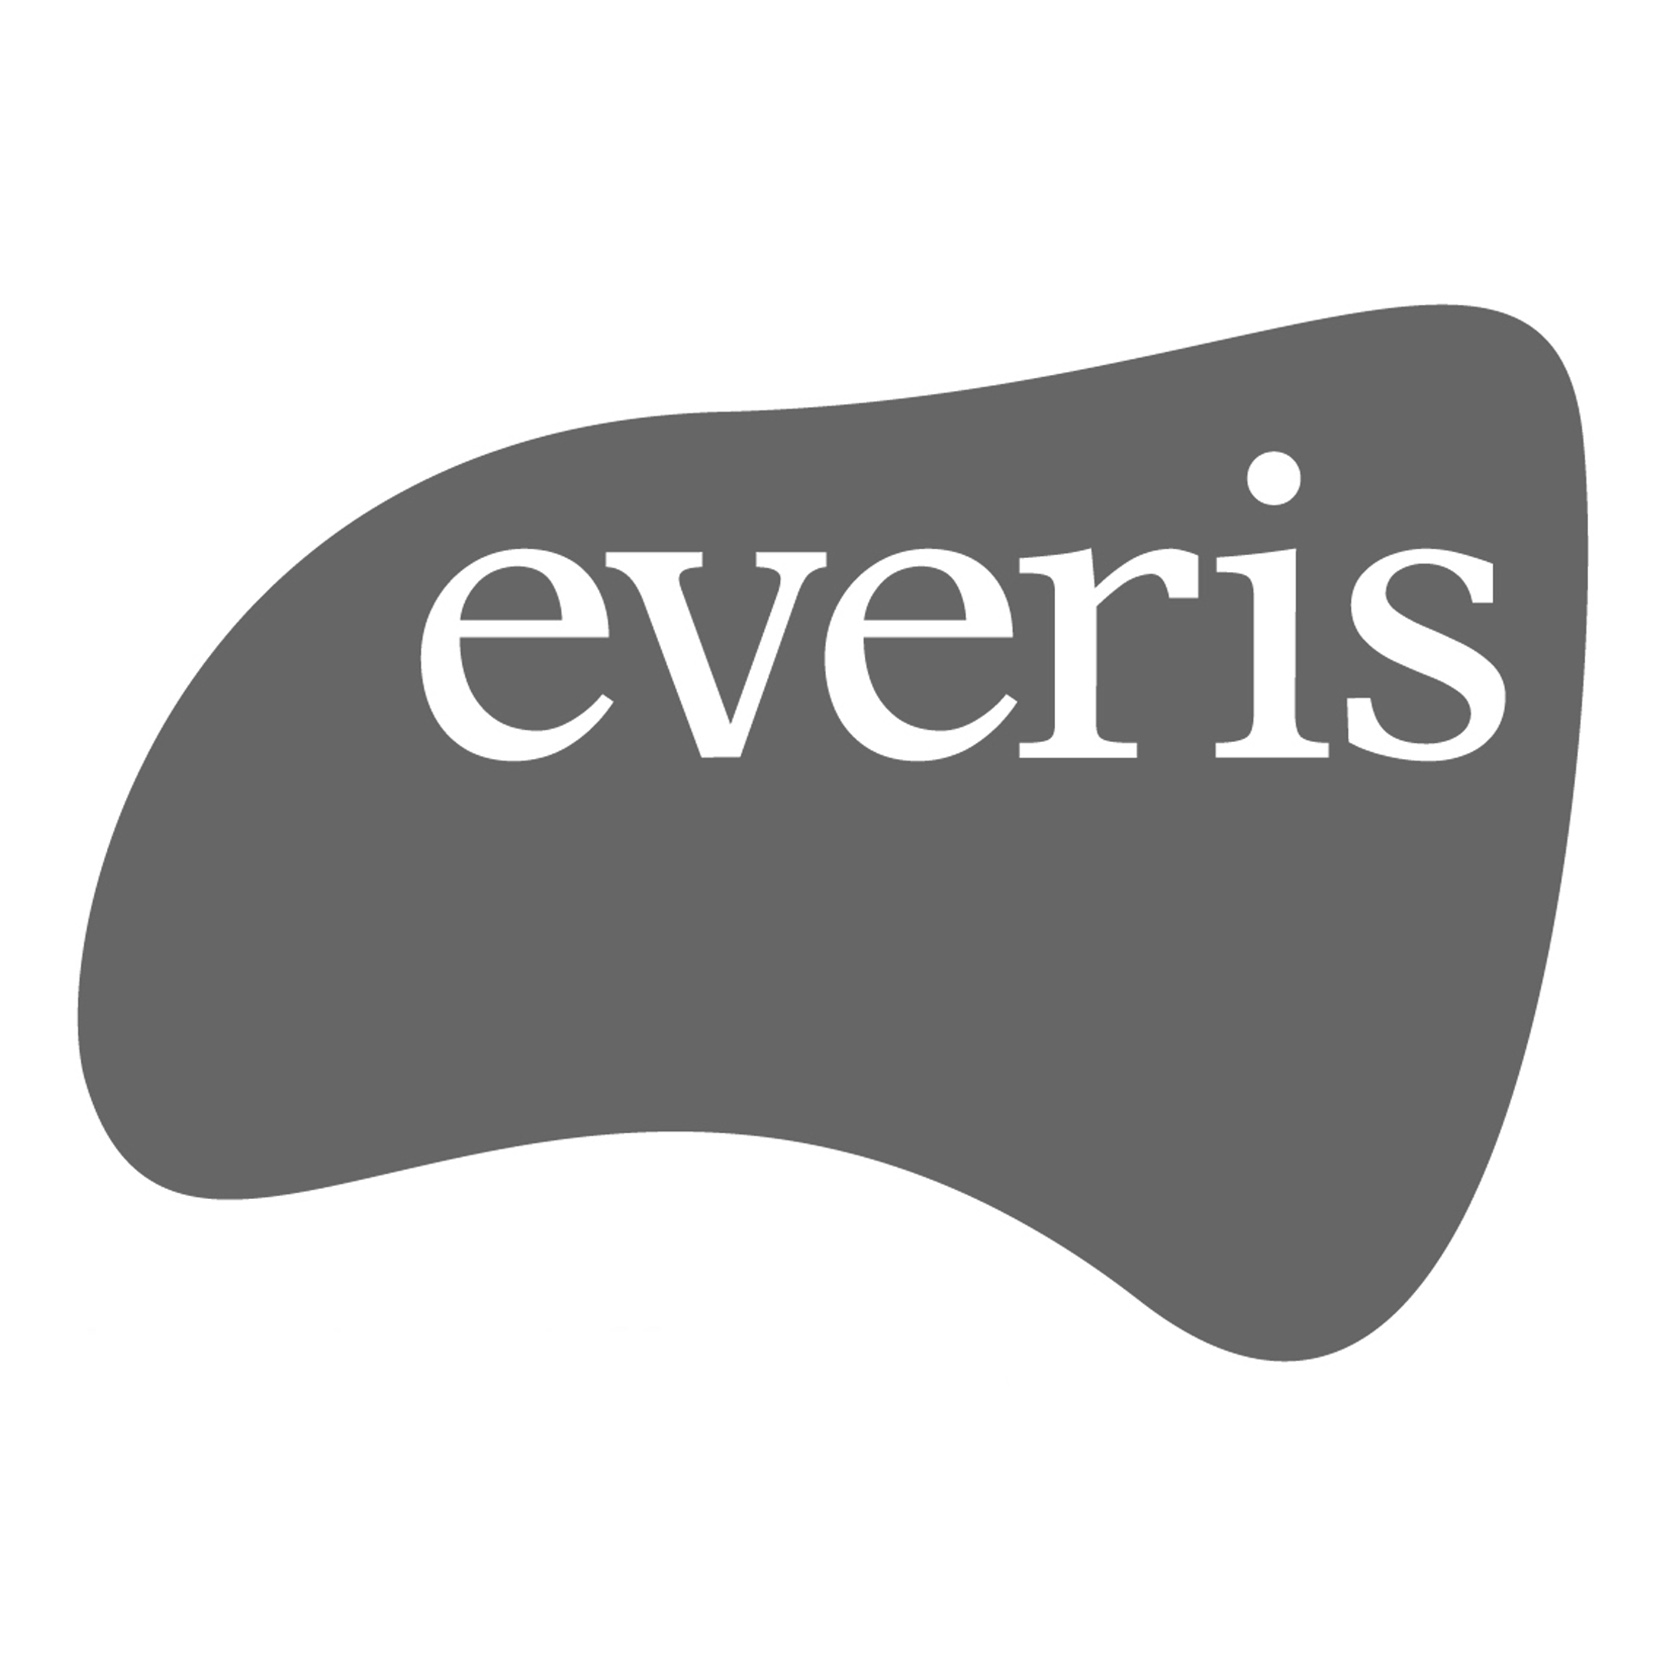 everis byn